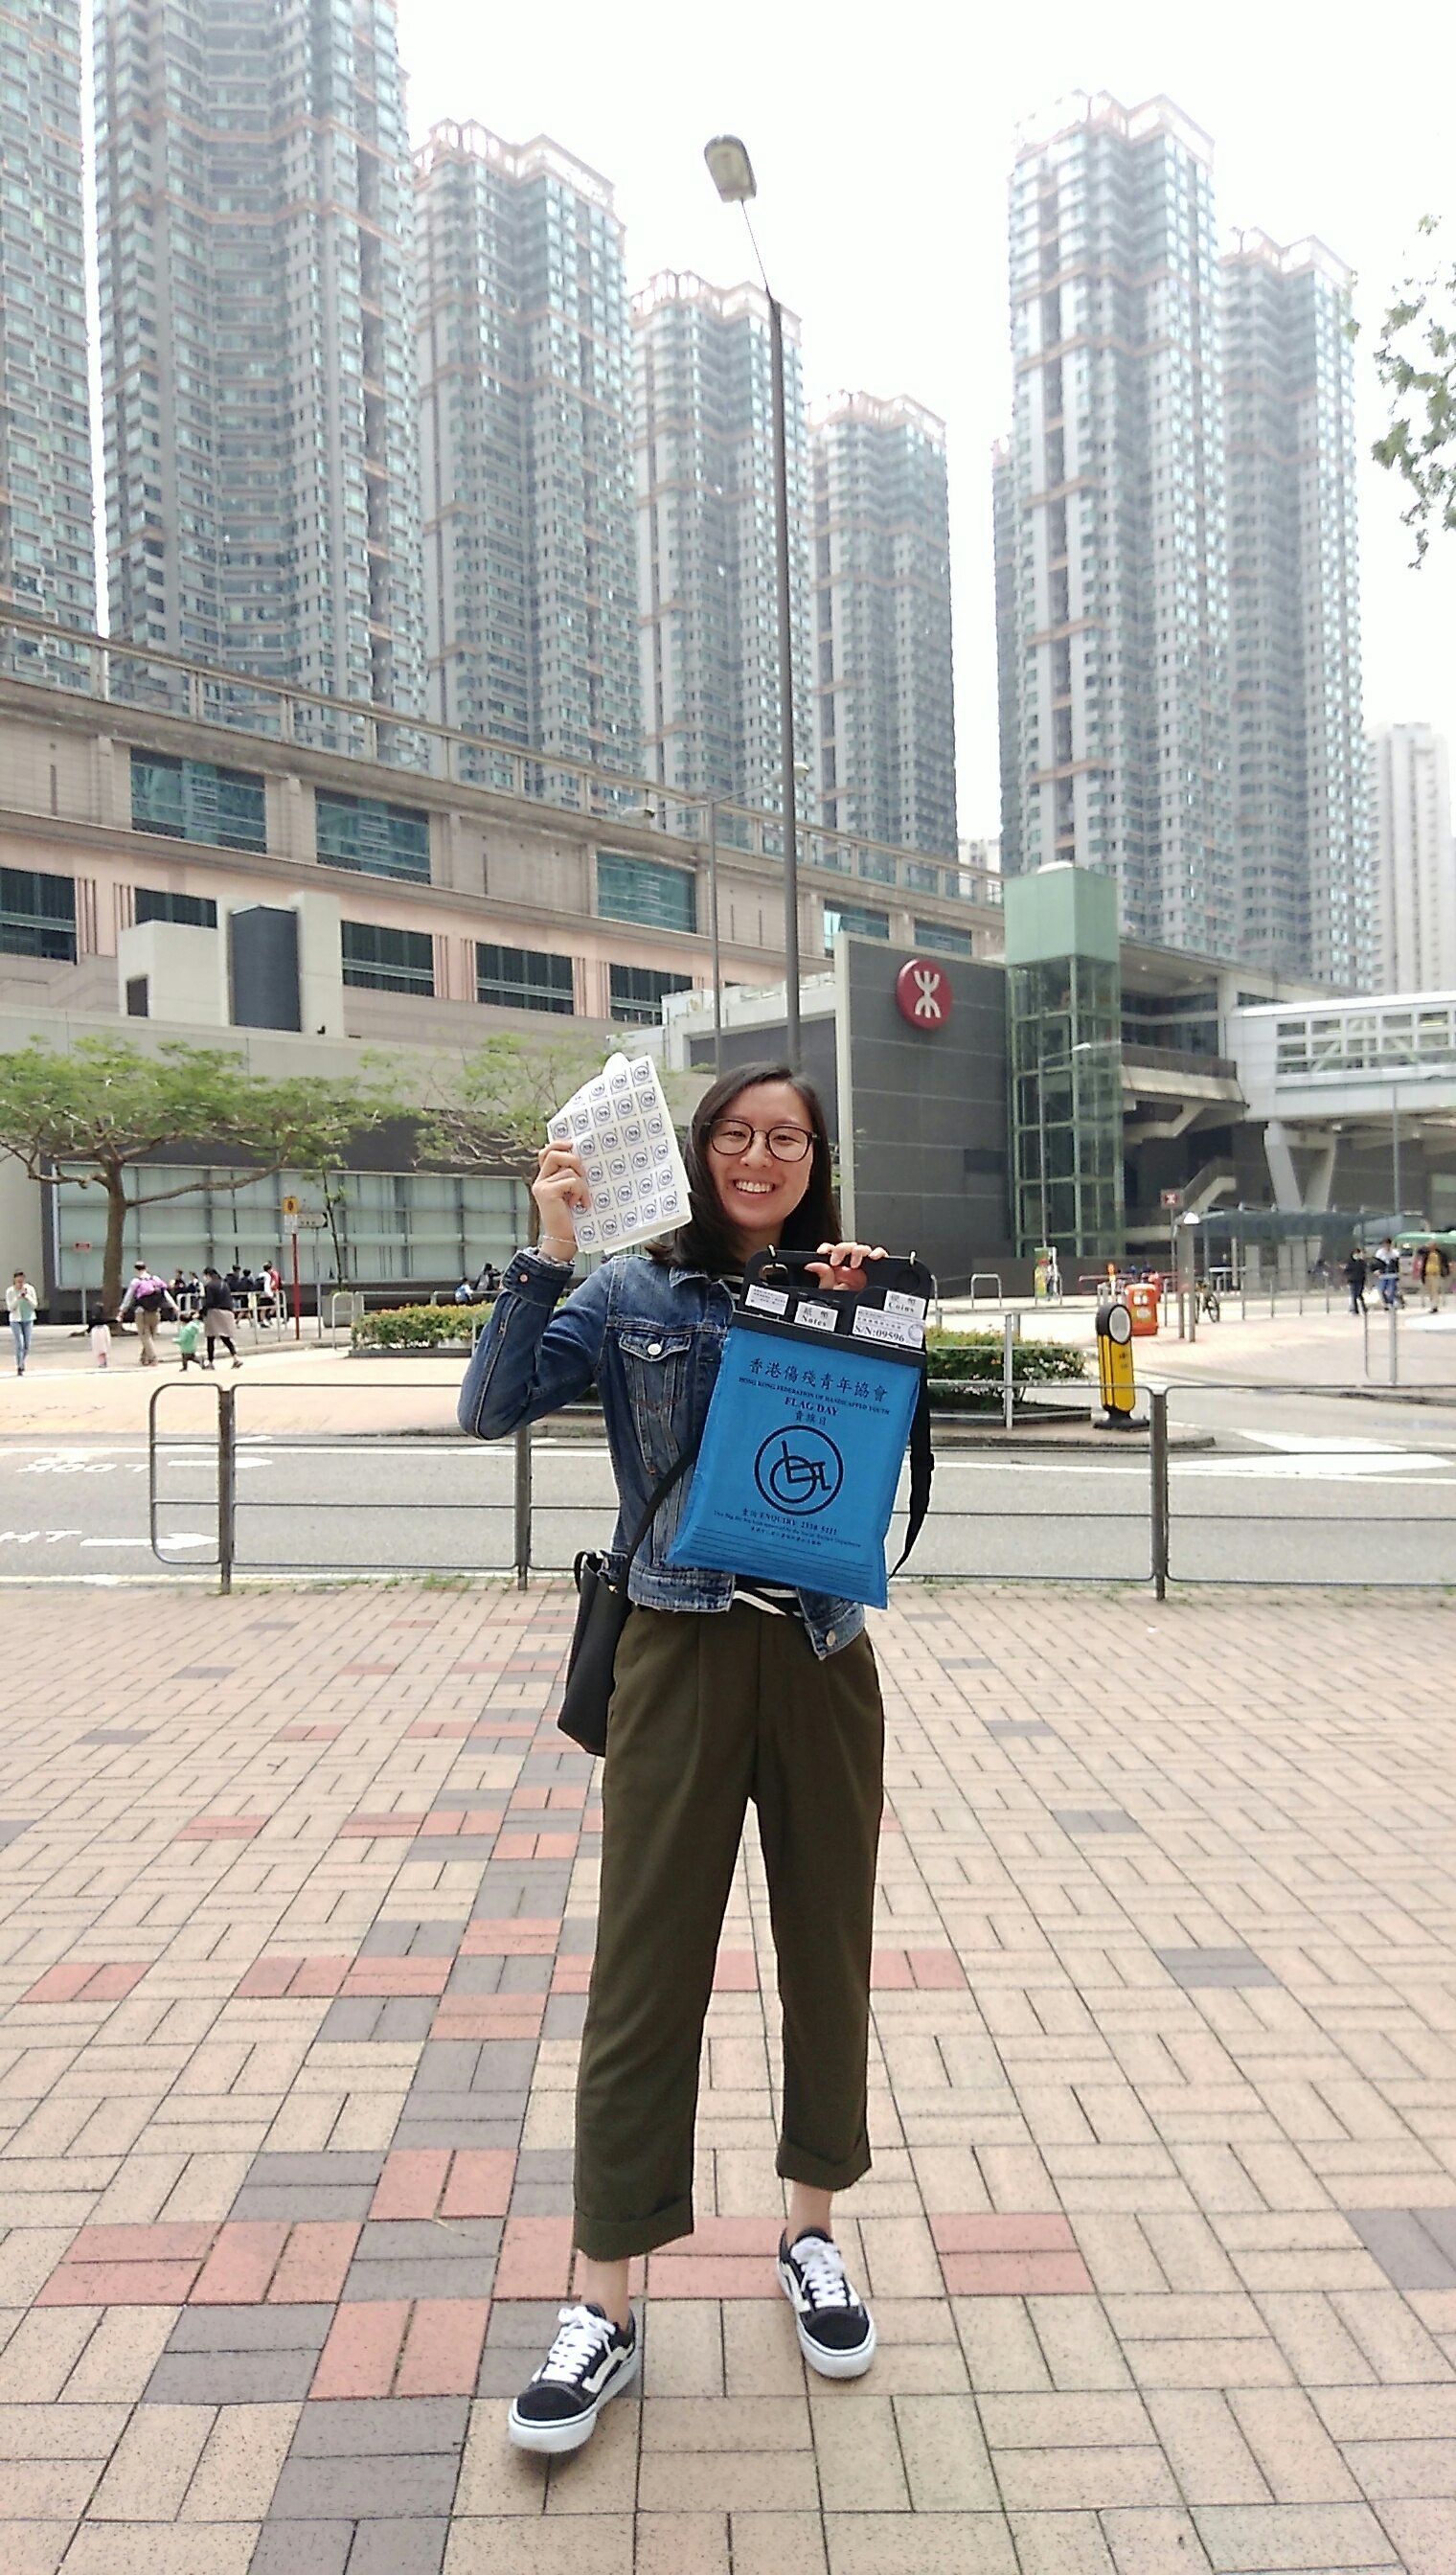 hong-kong-federation-of-handicapped-youth-flag-selling-day